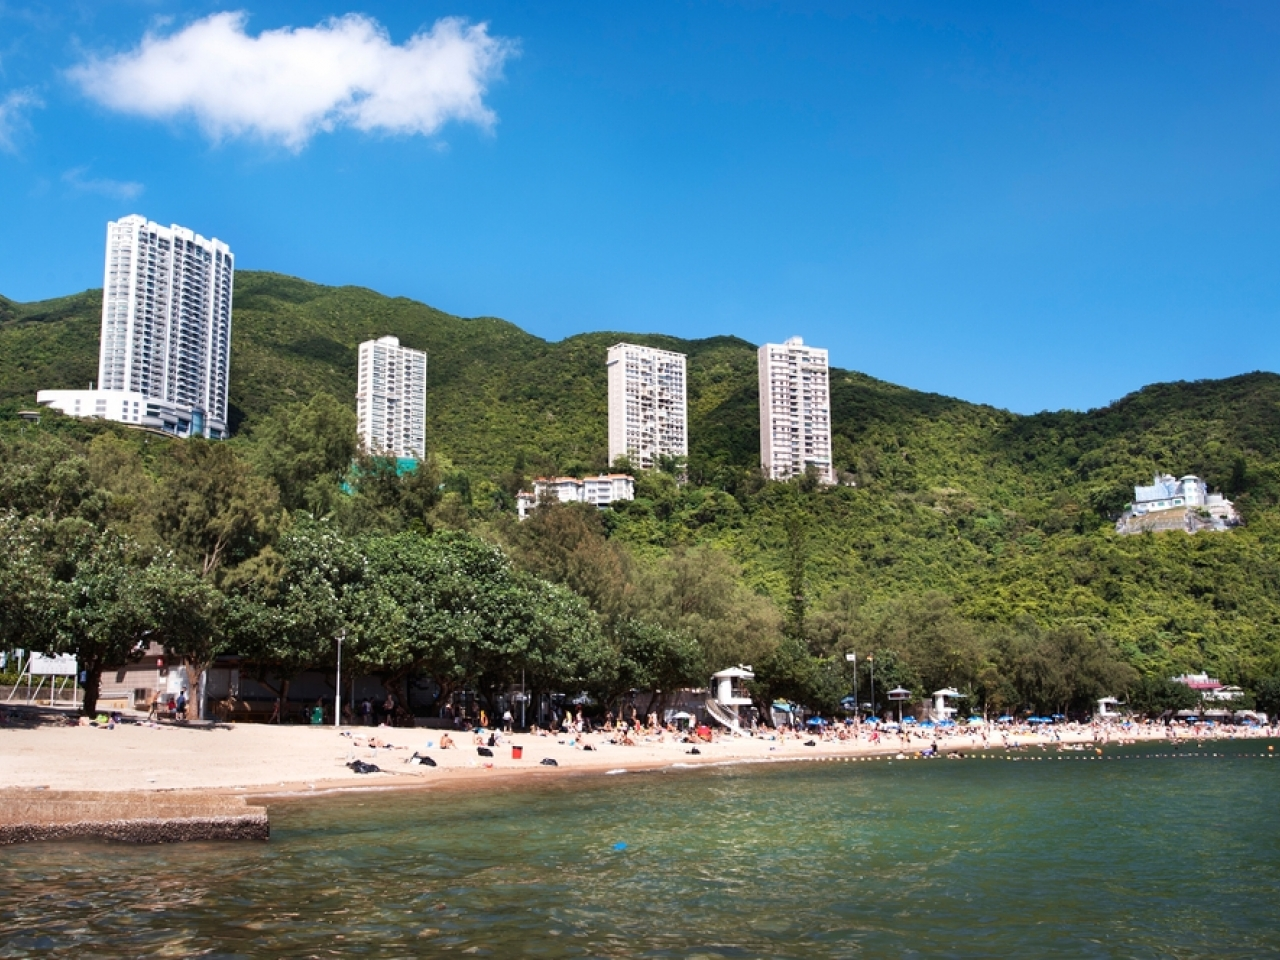 Anyone who visited Deep Water Bay on April 25 or May 1 must get tested for Covid before Saturday. File image: Shutterstock